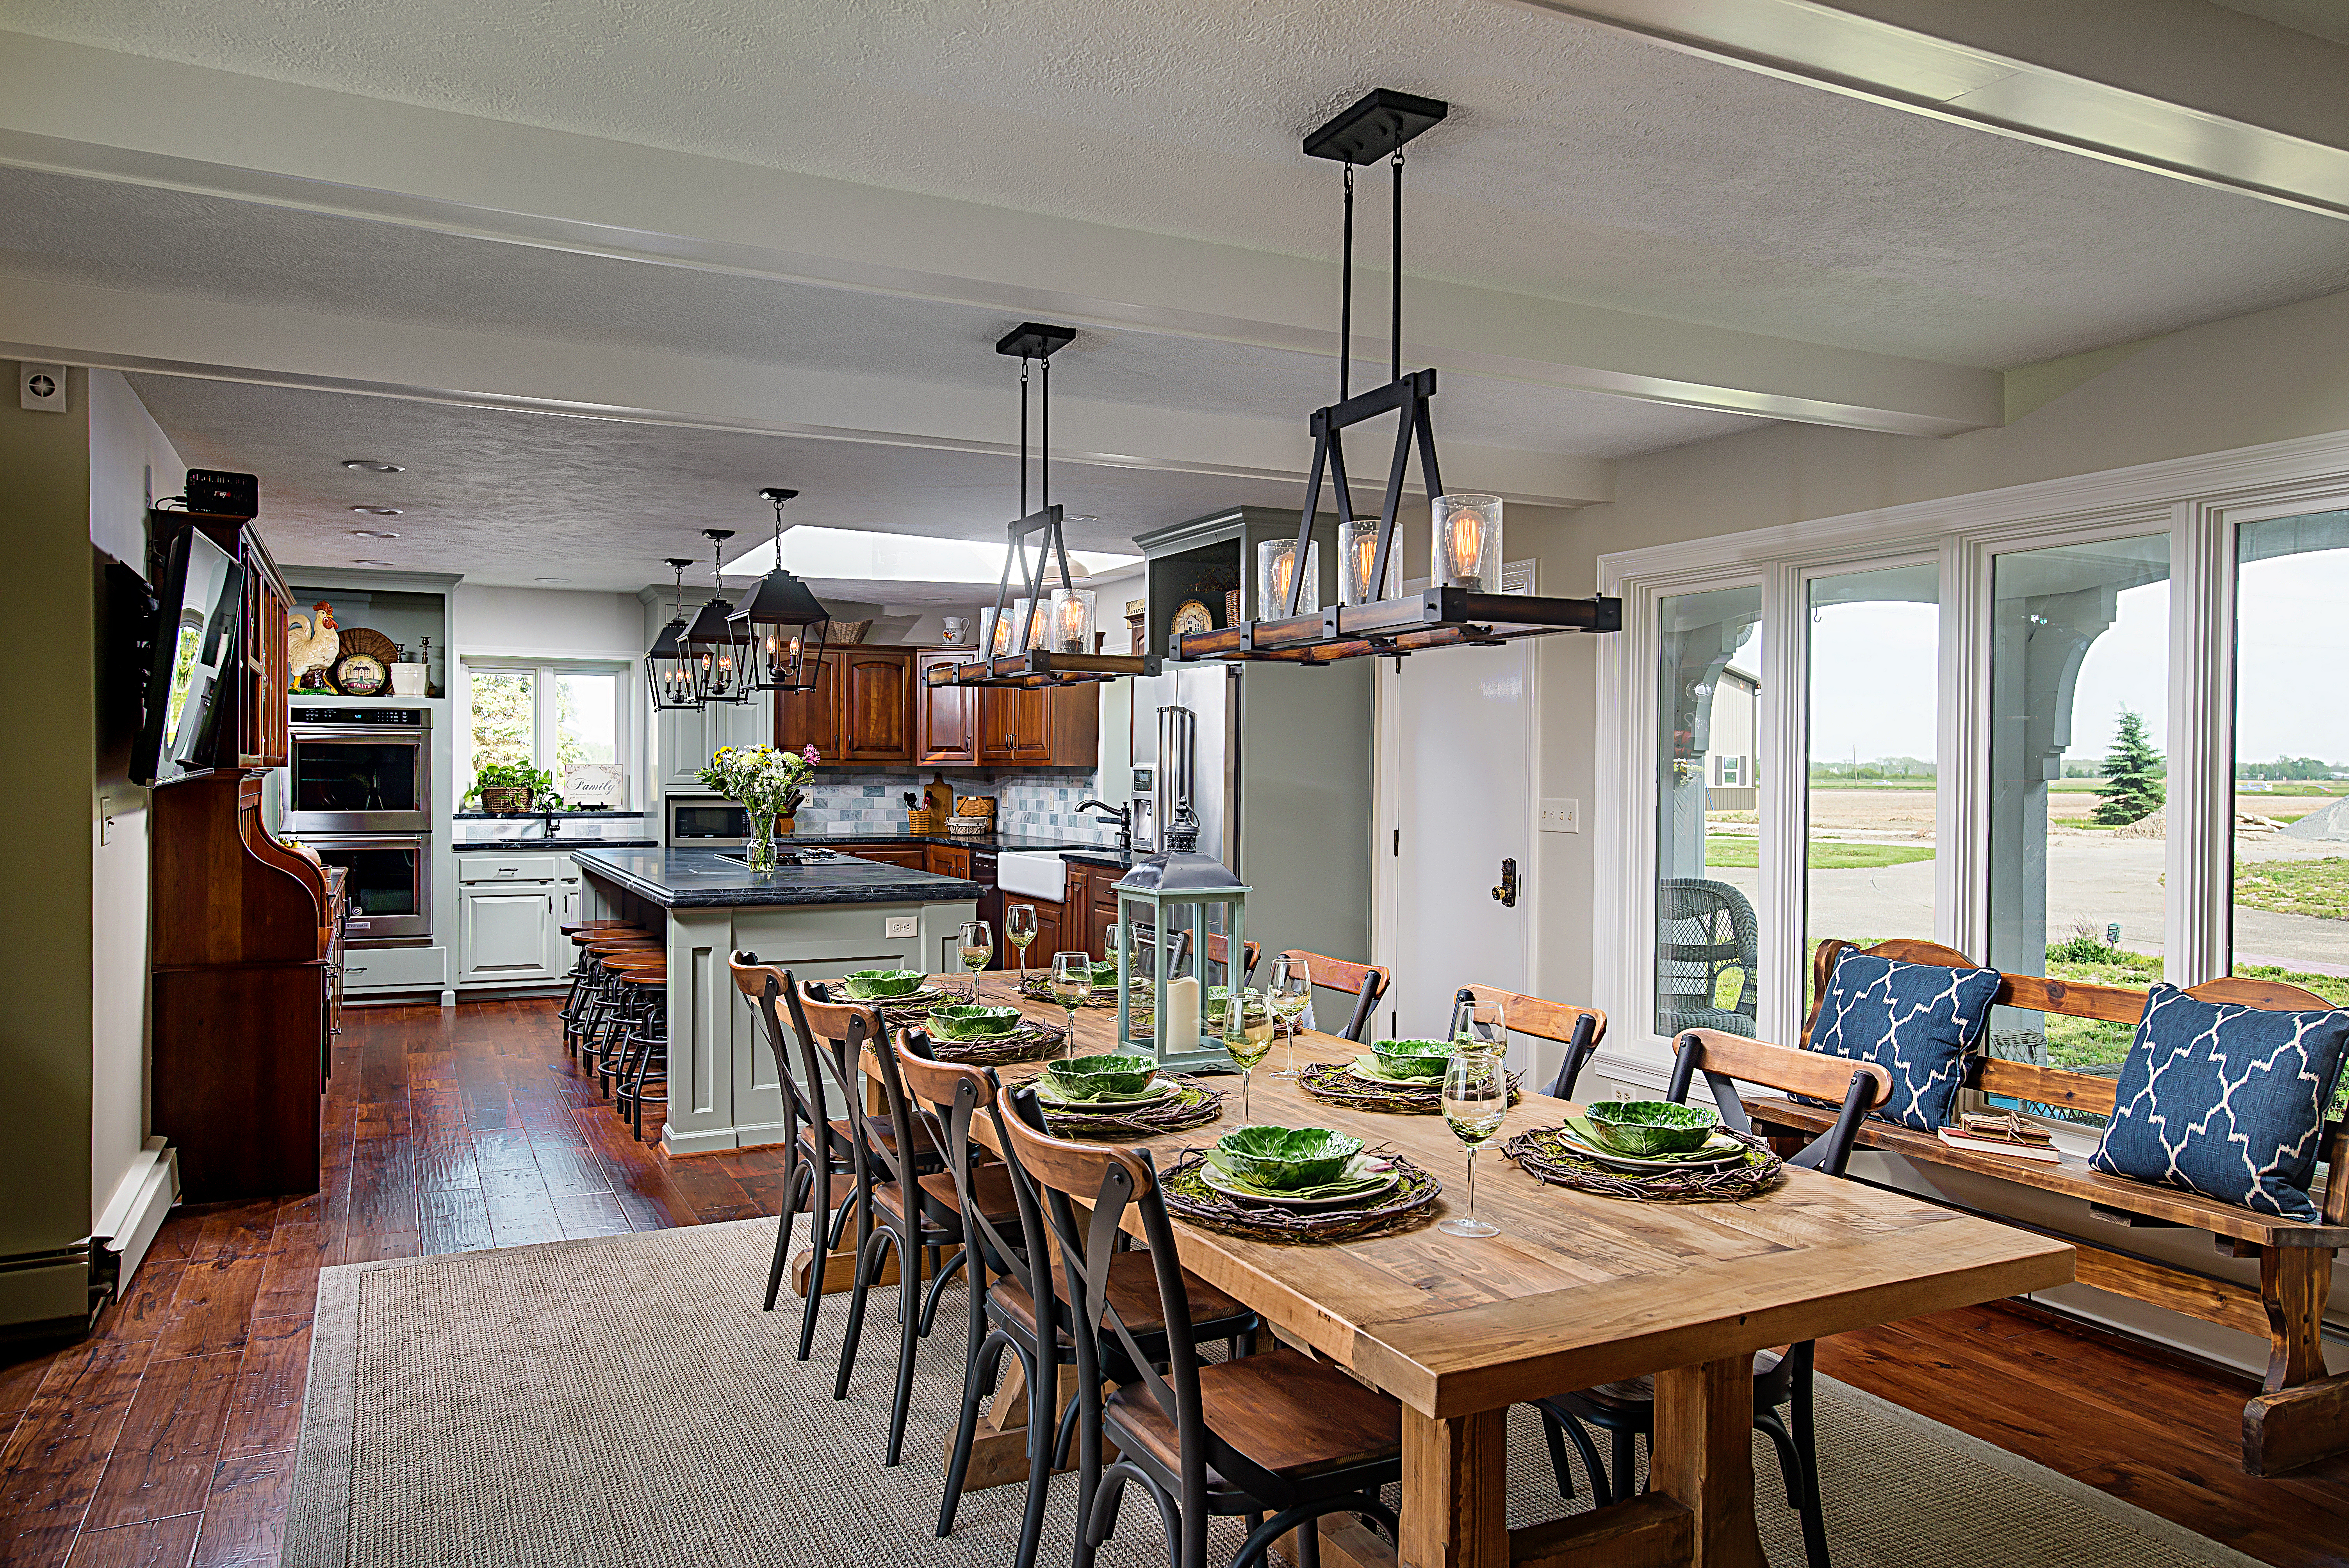 Home Remodeling Design Articles Ewc Home Services